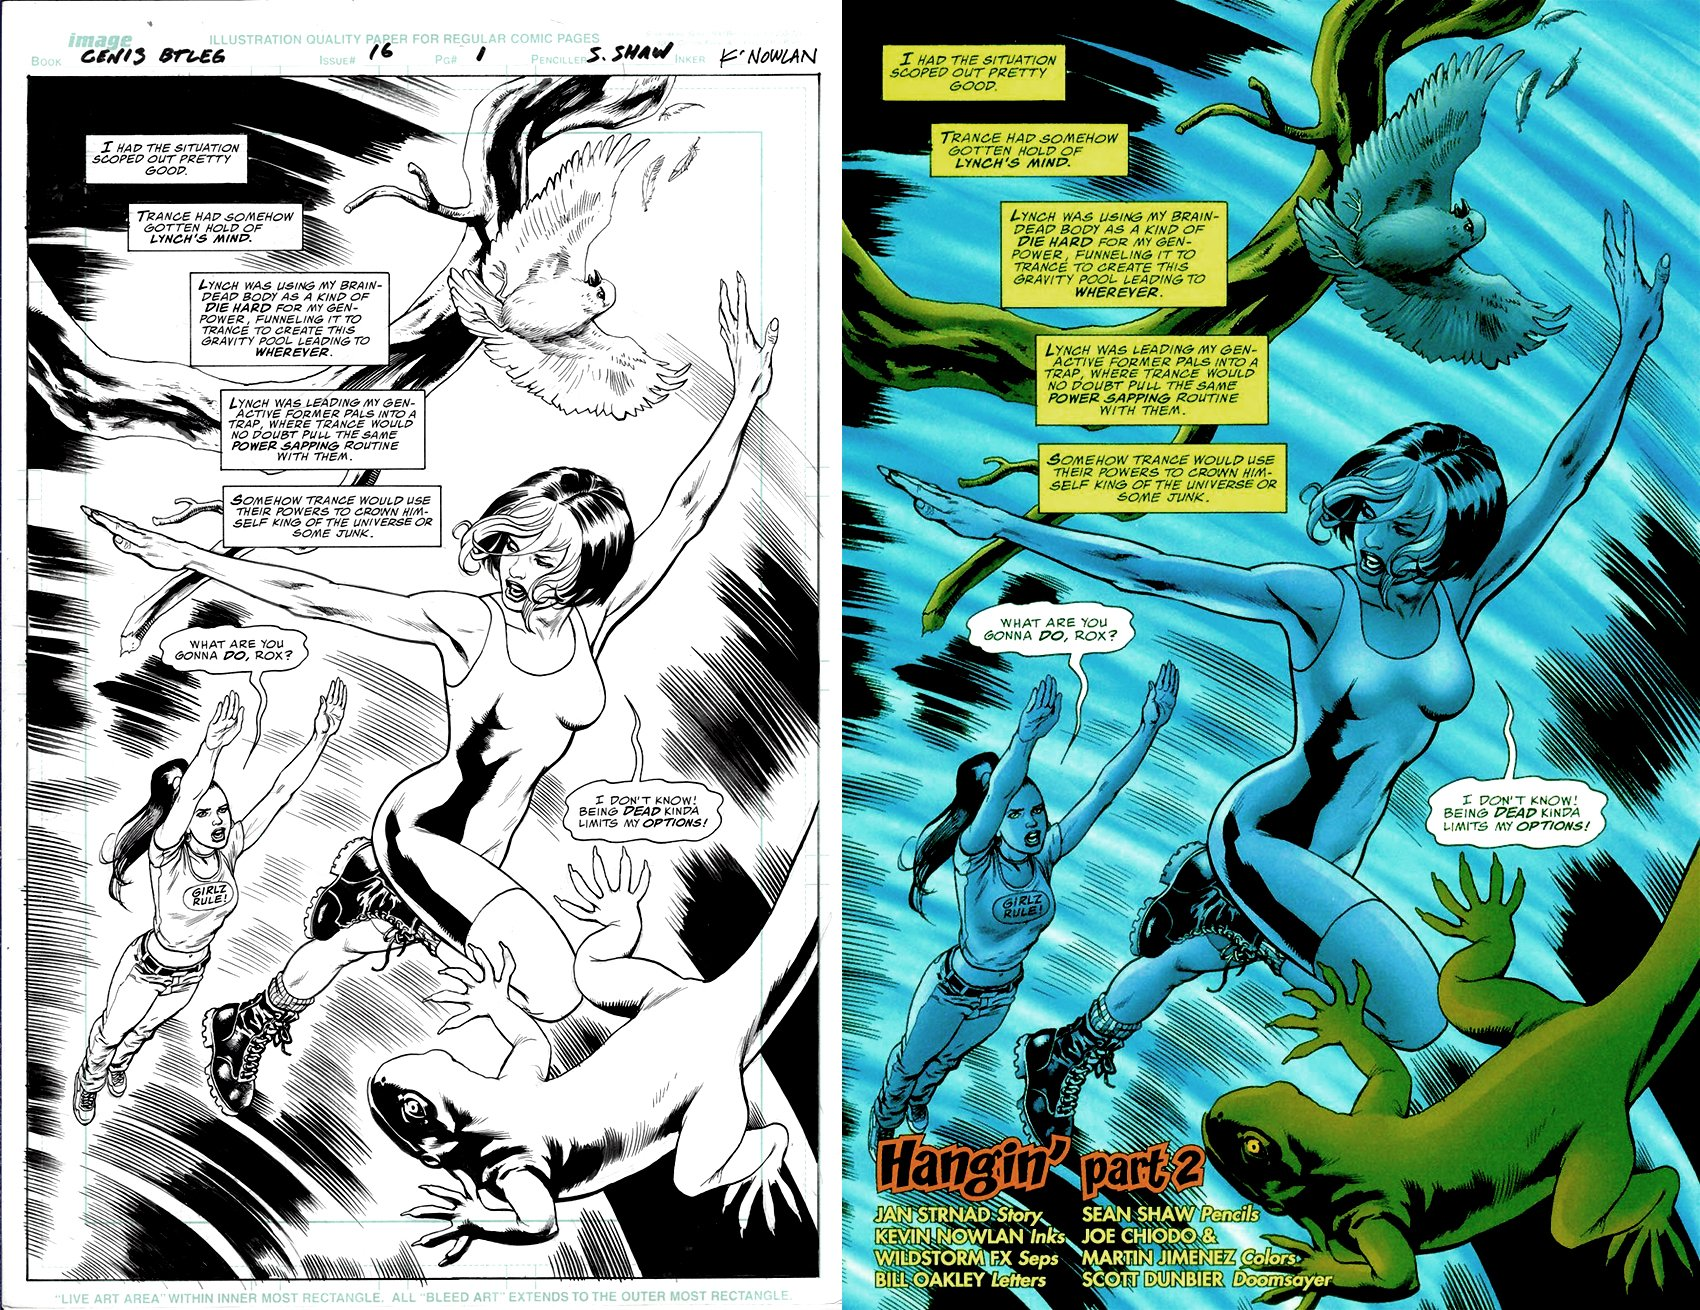 Gen 13 Bootleg 16 P 1 Splash (SOLD LIVE ON 'DUELING DEALERS OF COMIC ART' EPISODE #31 PODCAST ON 8-14-2021(RE-WATCH THIS FUNNY ART SELLING SHOW HERE)